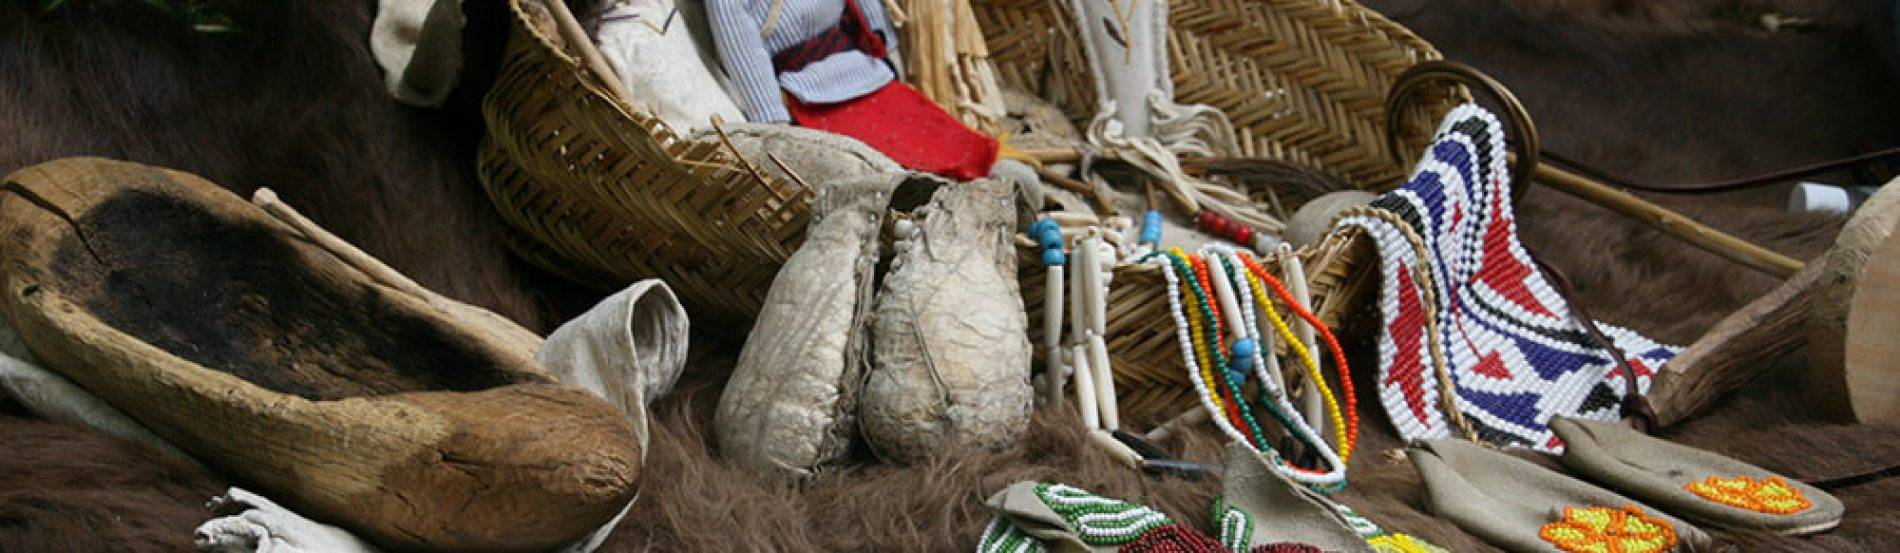 handmade dolls, shoes, accessories from the 1700 Ioway Farm